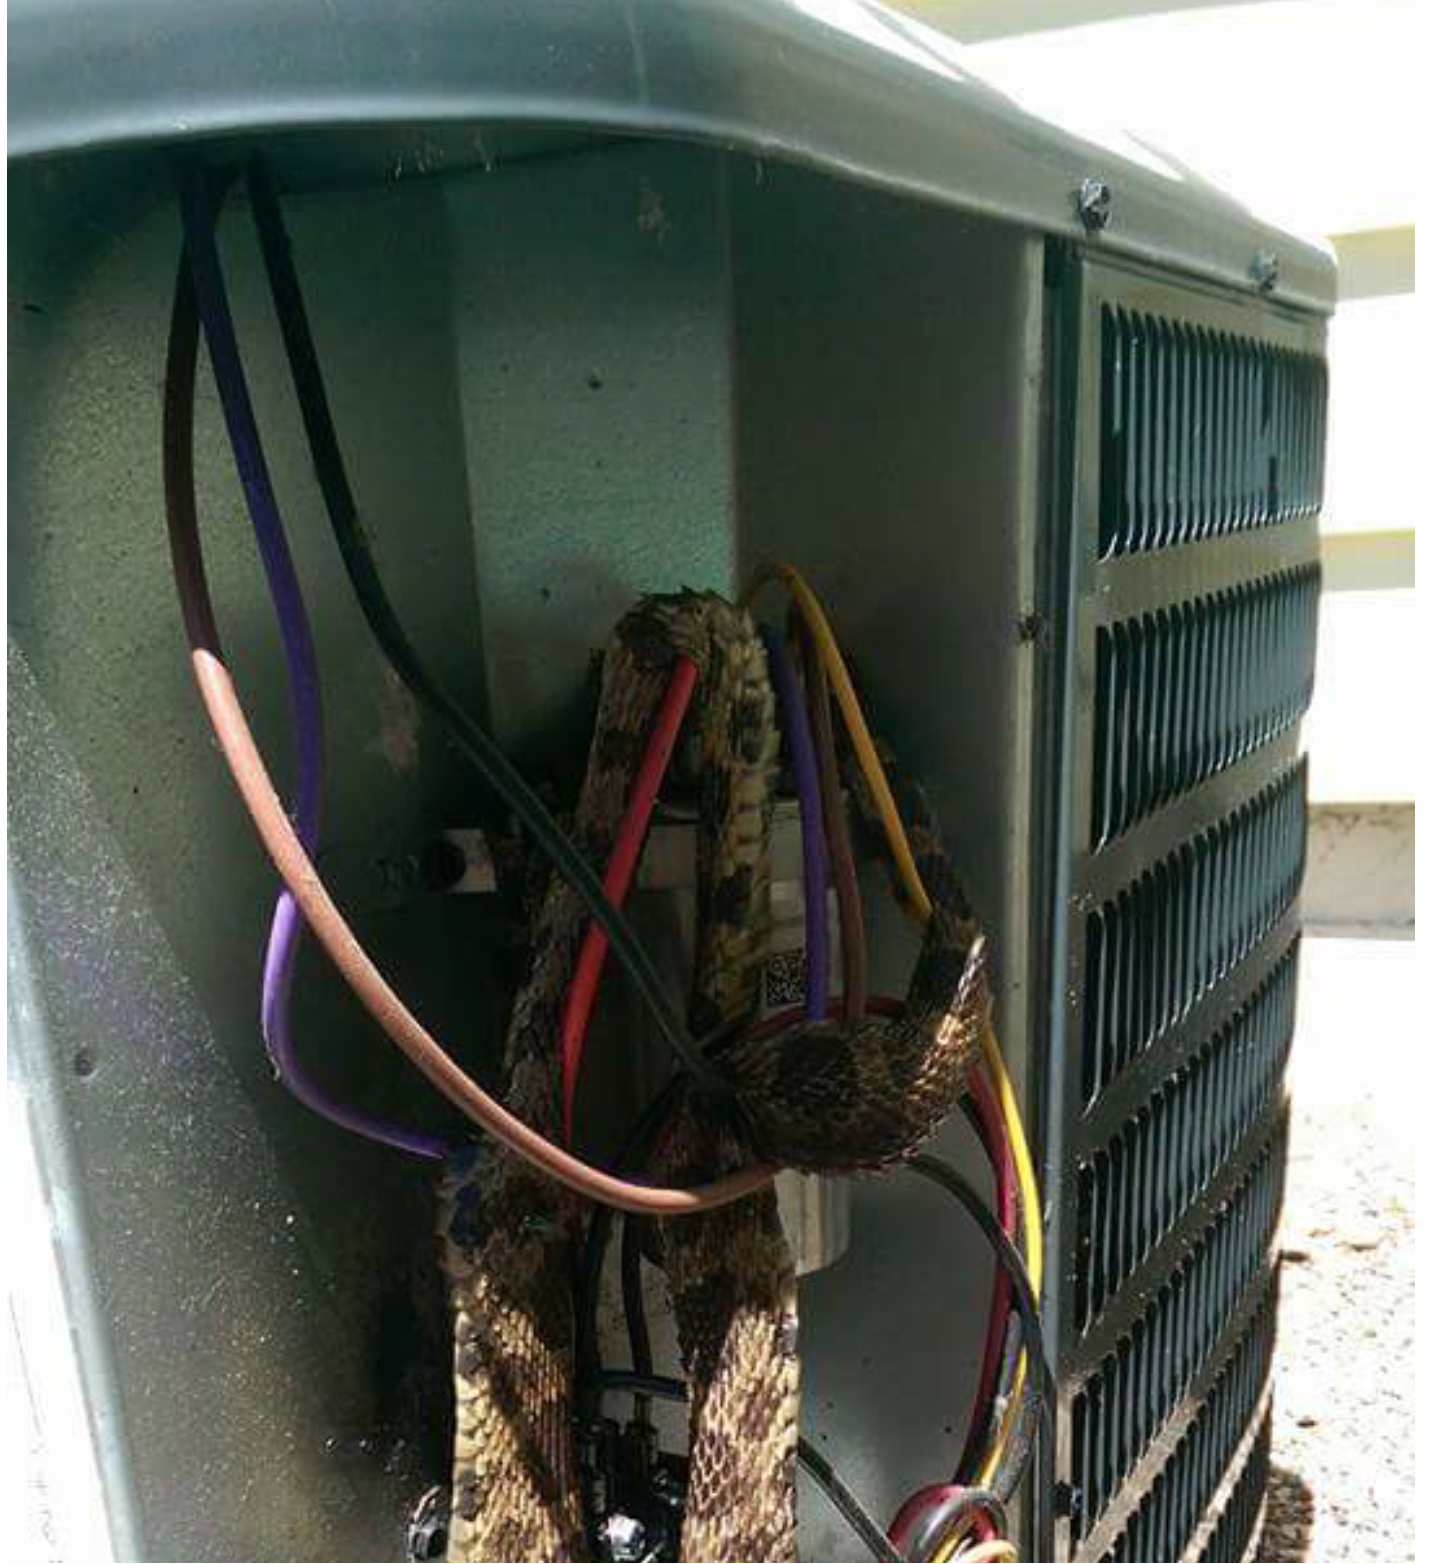 Pin By Sharon Davis On Hvac Snake Eyes Hacks Snake